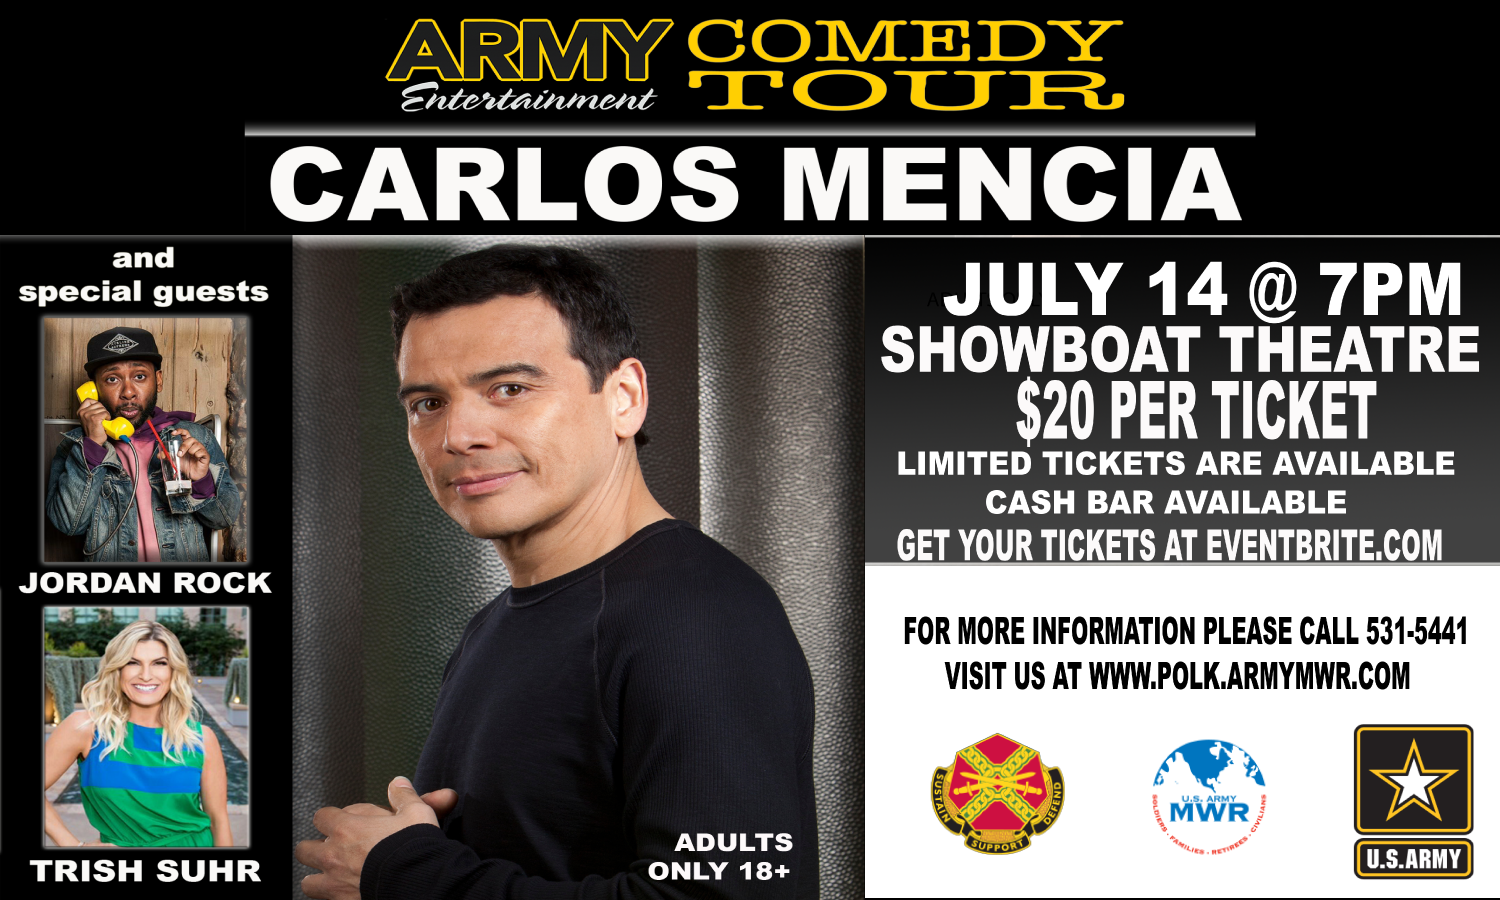 ARMY Entertainment Comedy Tour